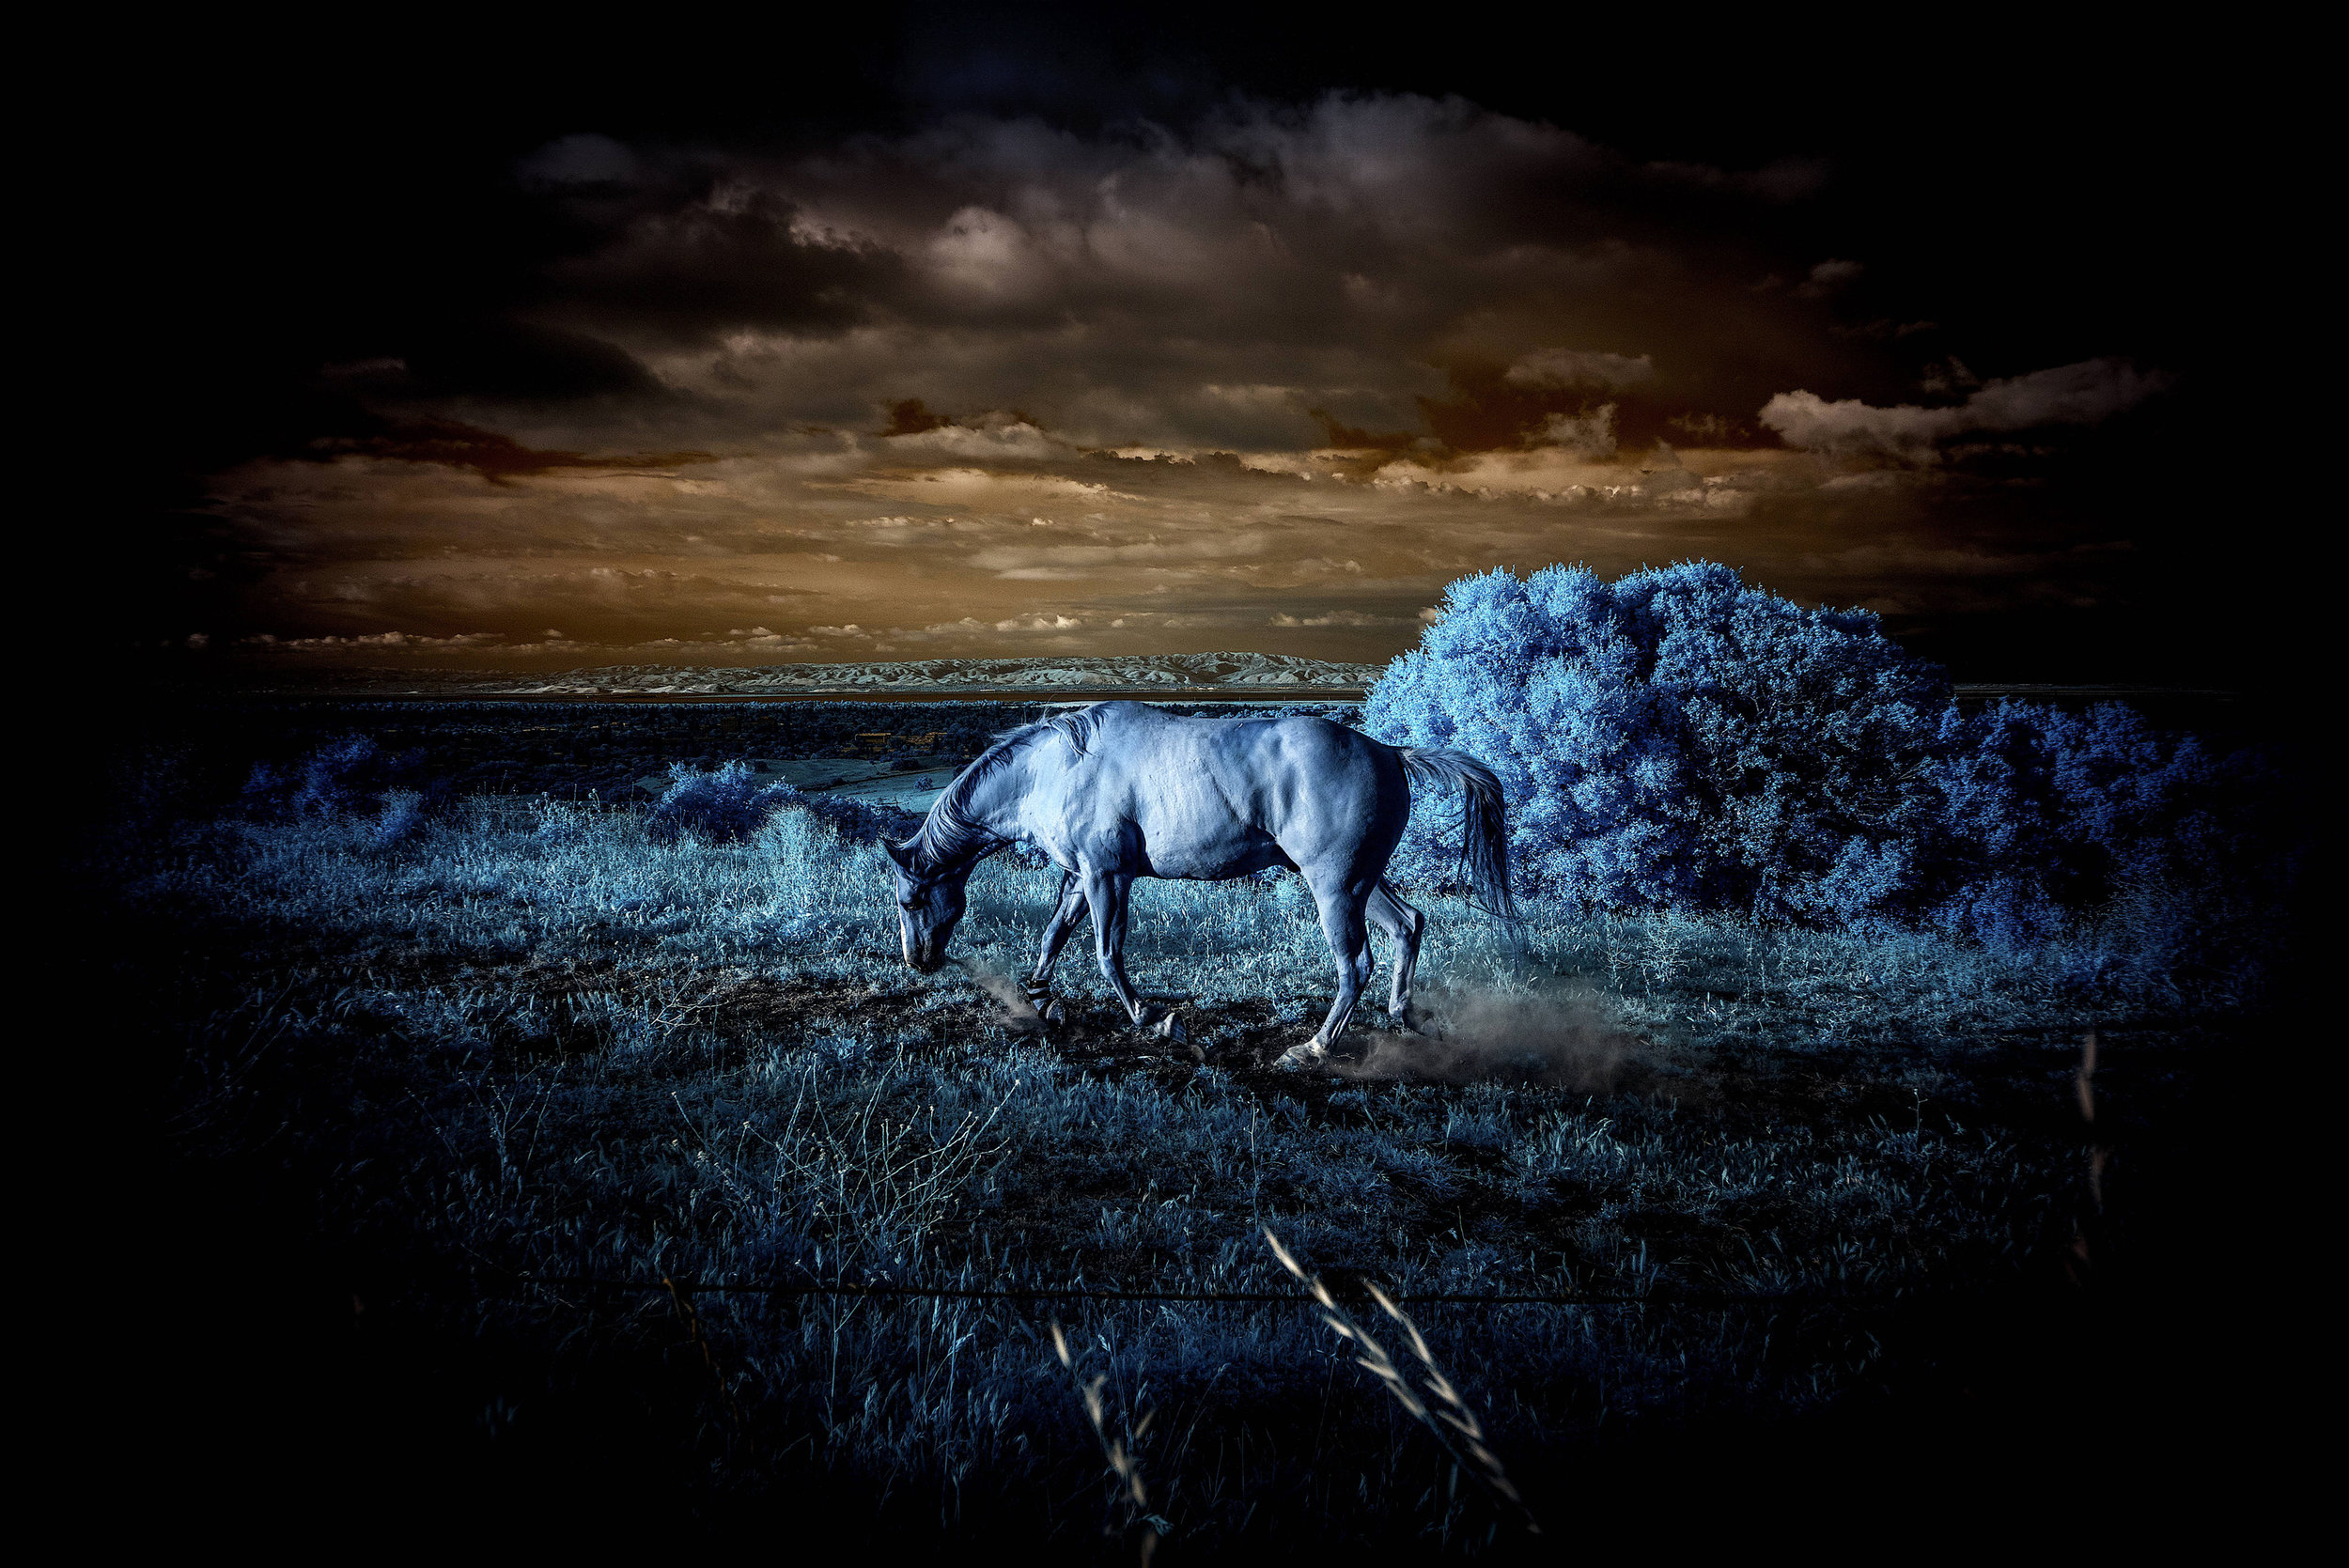 THIRD PLACE  - Robert Zucker | A Dark Horse | 29x35